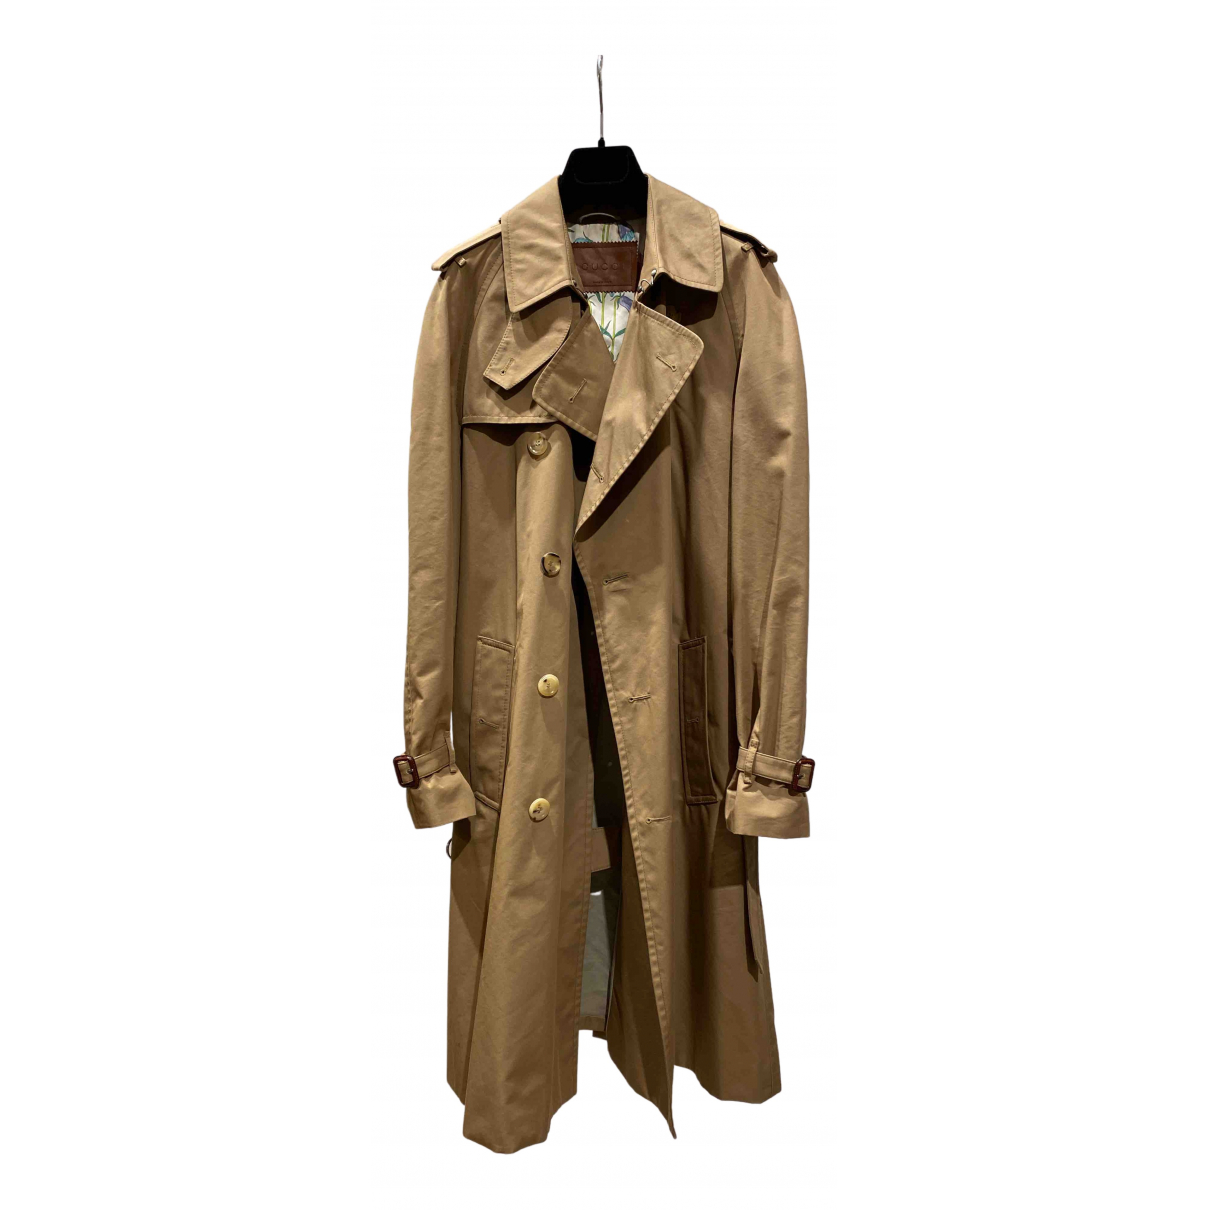 Gucci N Beige Cotton Trench coat for Women 38 FR